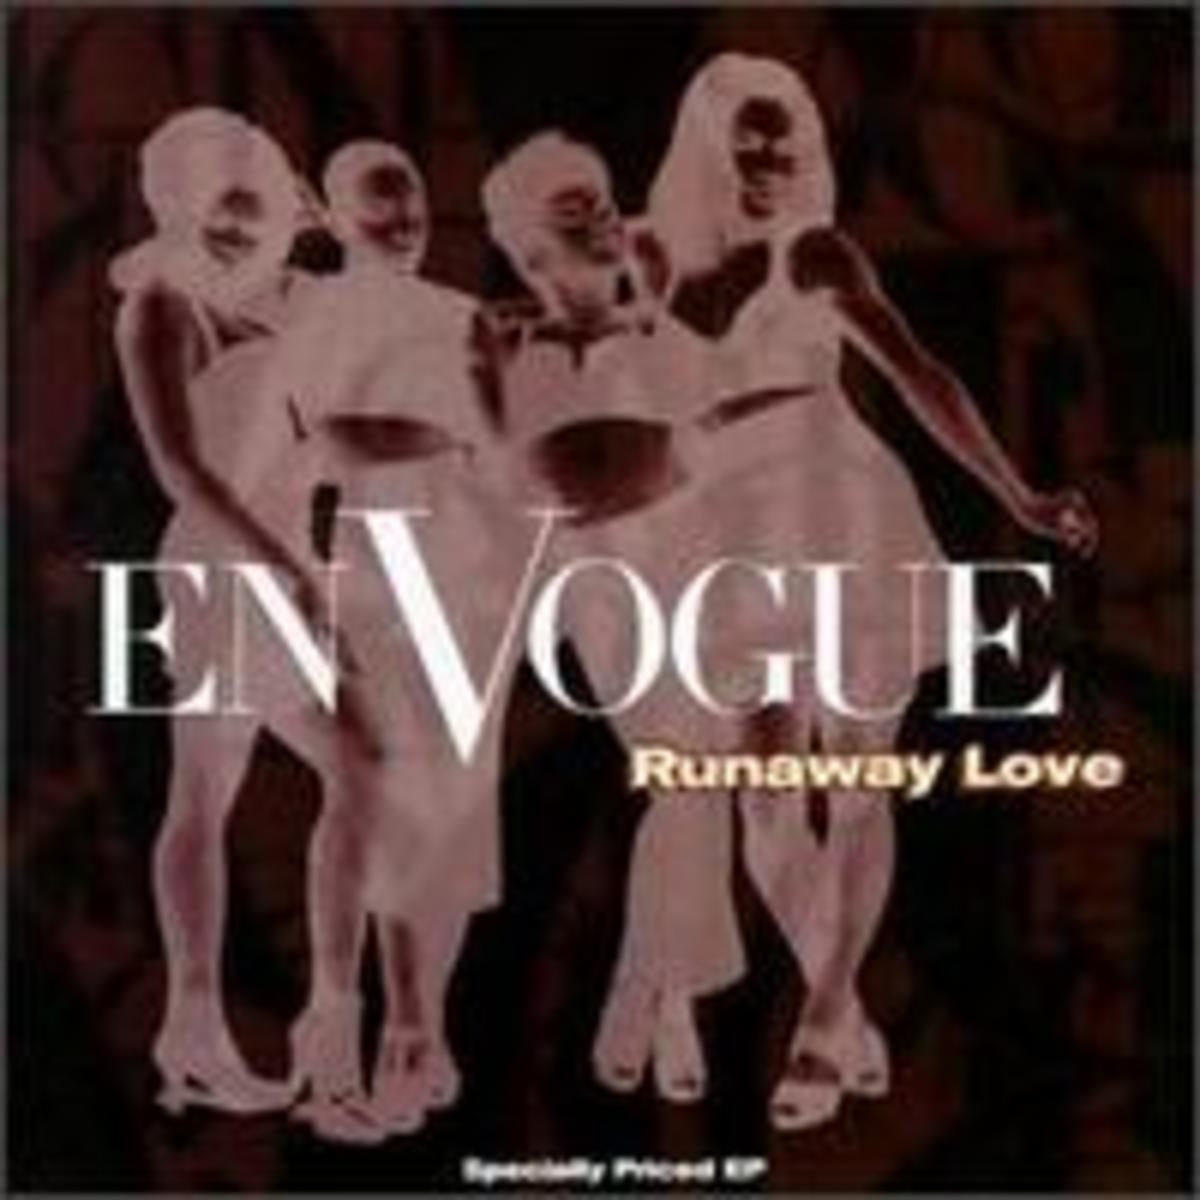 Runaway Love was an EP released after the success of Funky Divas.  It was used to build on their momentum while buying them time to work on various side projects.